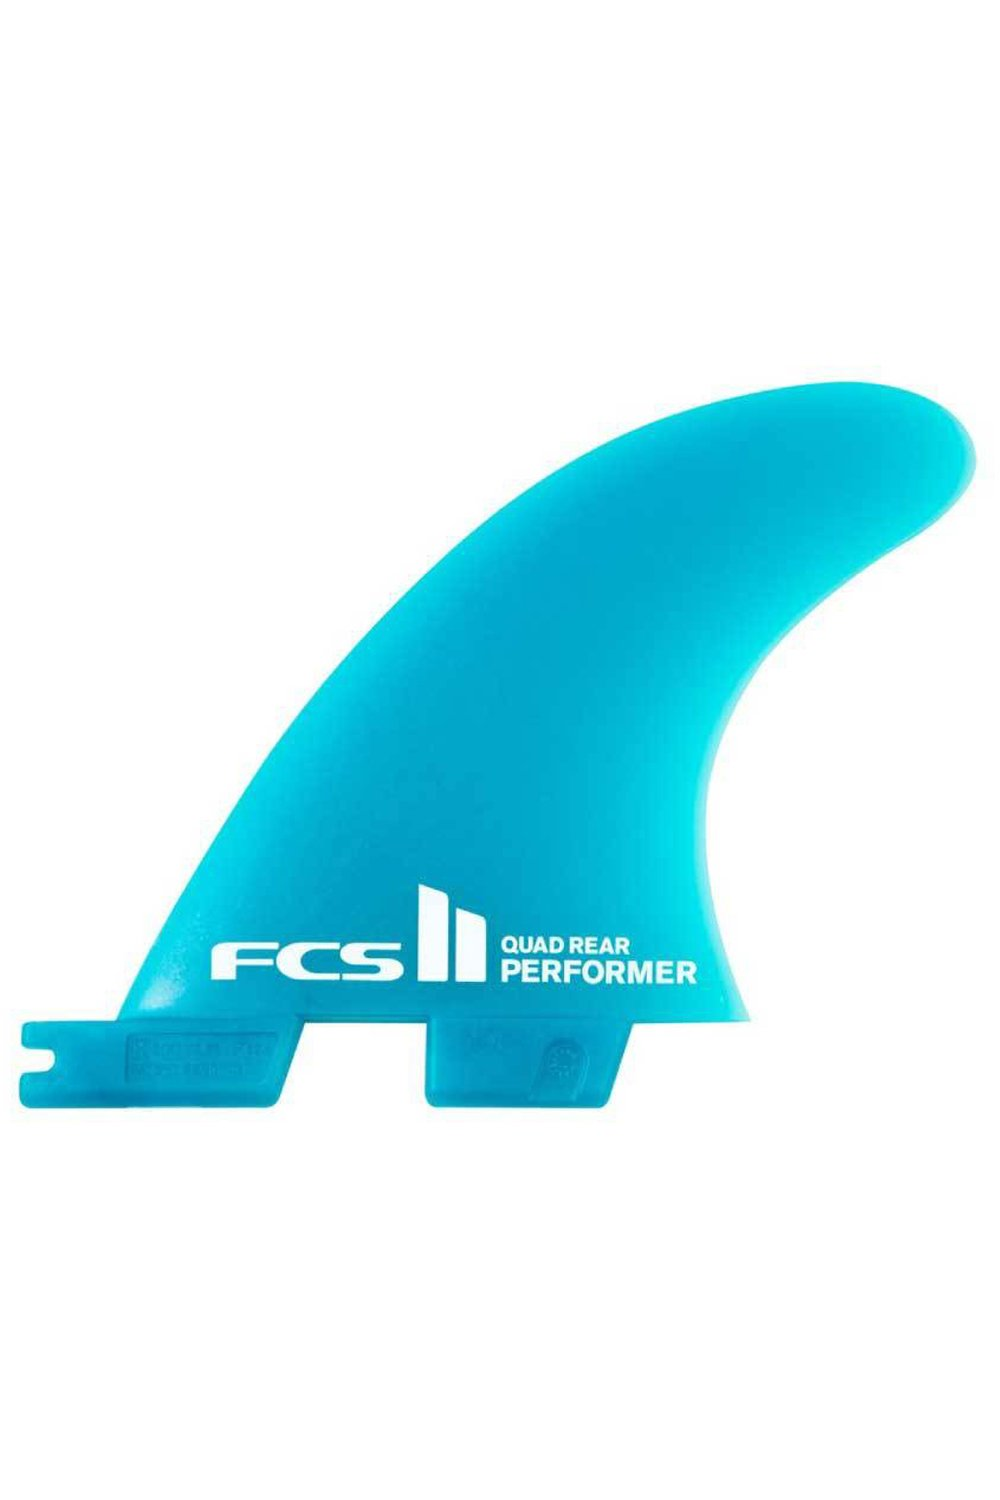 FCS 2 Neo Glass Performaer Quad Rears 50/50 Foil